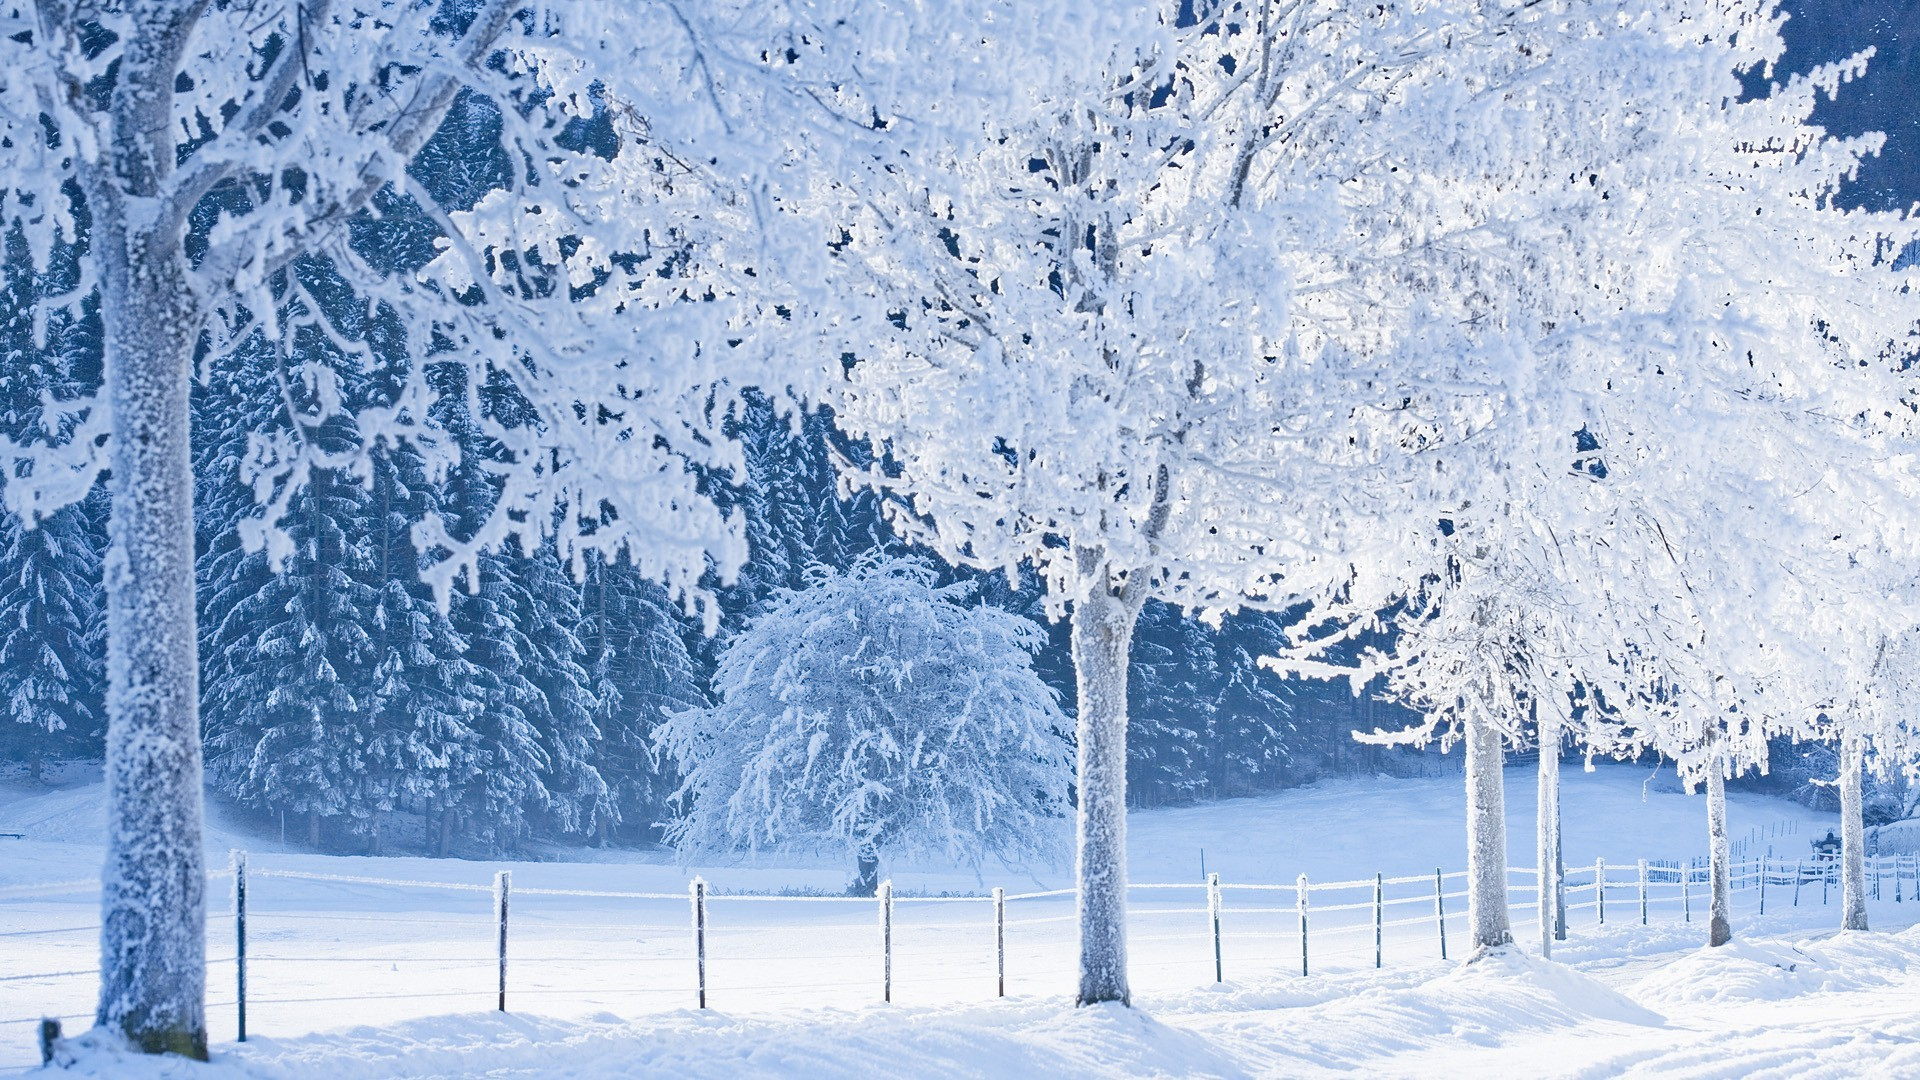 1920x1080 Real Snowy Backgrounds, wallpaper, Real Snowy Backgrounds hd wallpaper .